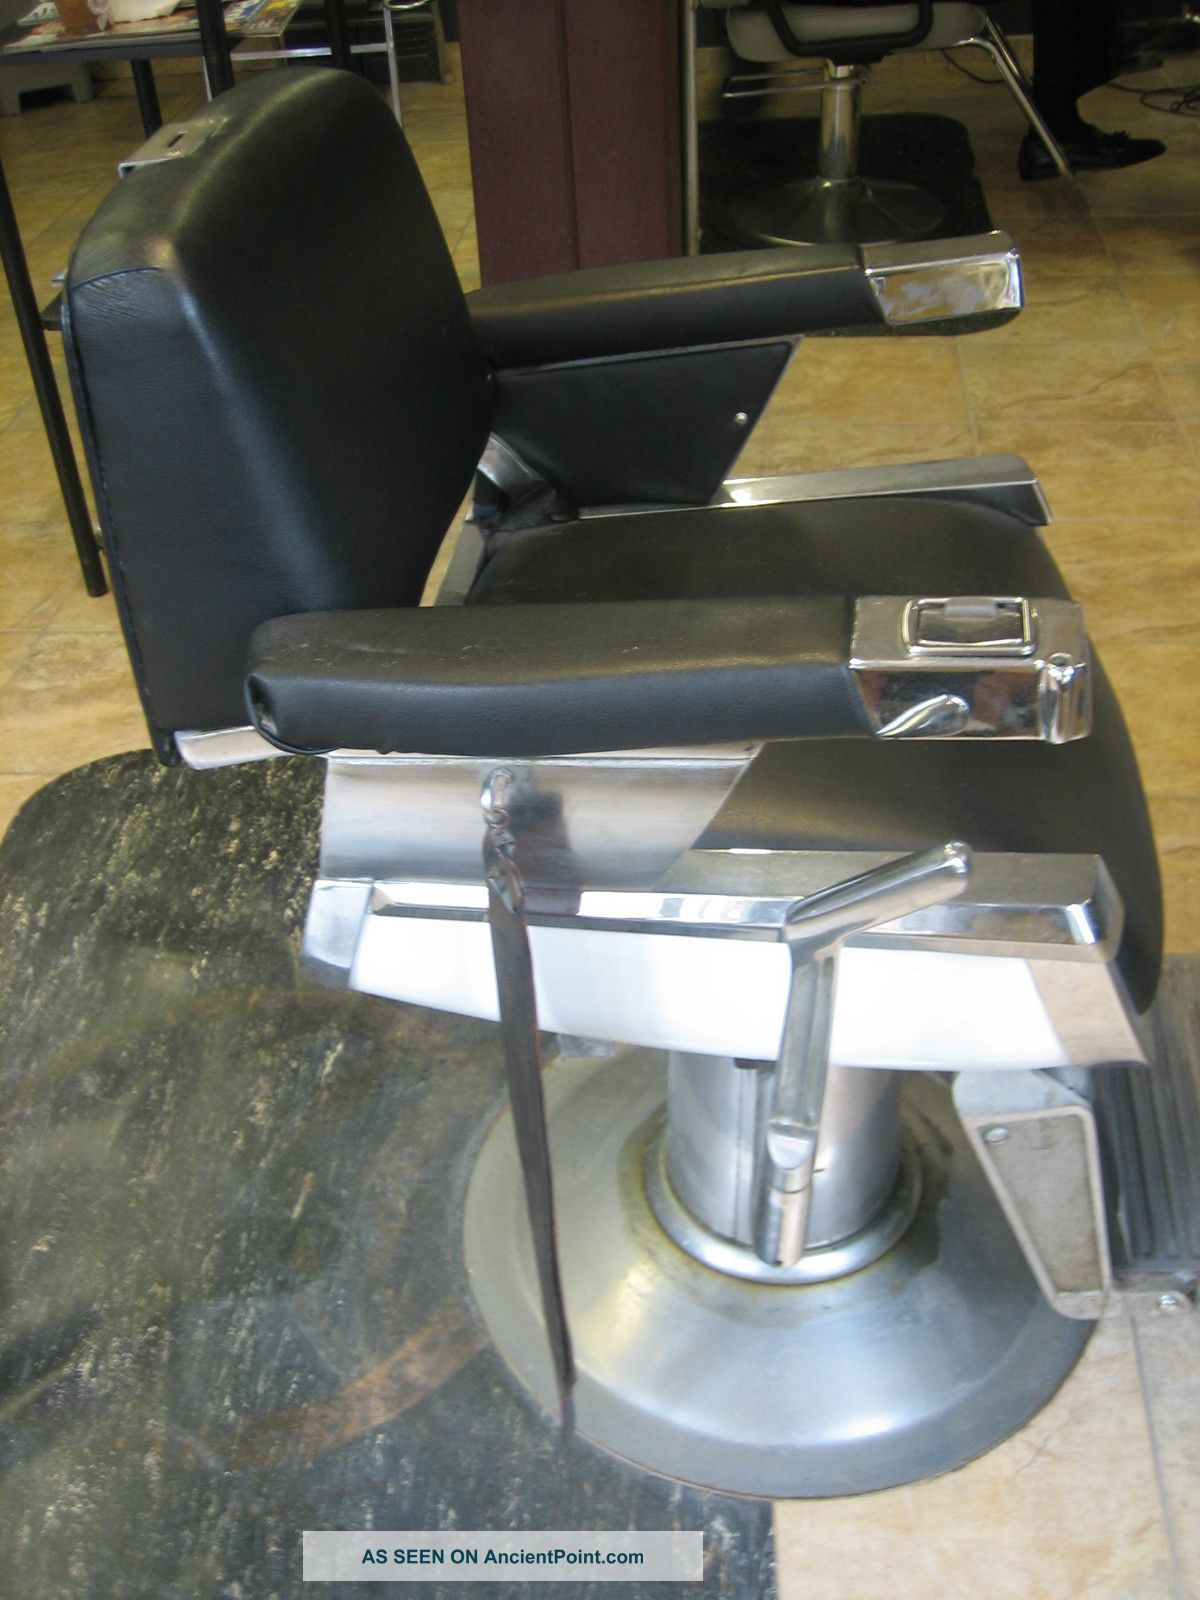 Antique Barber Chair Belmont Barber Chair Salon Chair - Barber / Salon  Equipment - Antique Barber Chair Belmont Barber Chair Salon Chair - Barber